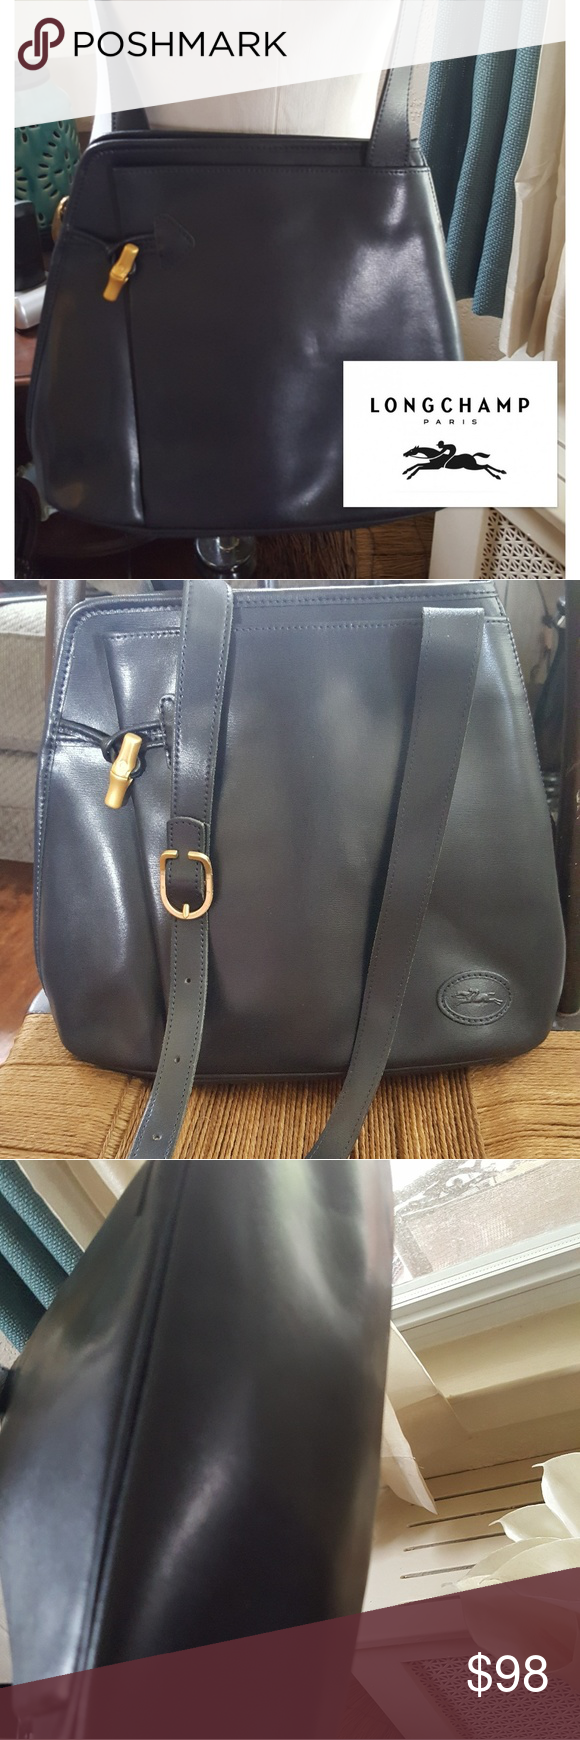 Longchamp Roseau crossbody bag A bag for my Personal Collection which shows literally no signs of use. It is navy blue leather with the correct Hardware as shown in photos. 8.5 in h × 4 in w x 10.5 w. This is a fabulous vintage bag with an adjustable shoulder strap. Reasonable offers are welcome. This is an amazing bag with a front pocket as well as to slip pockets Longchamp Bags Crossbody Bags